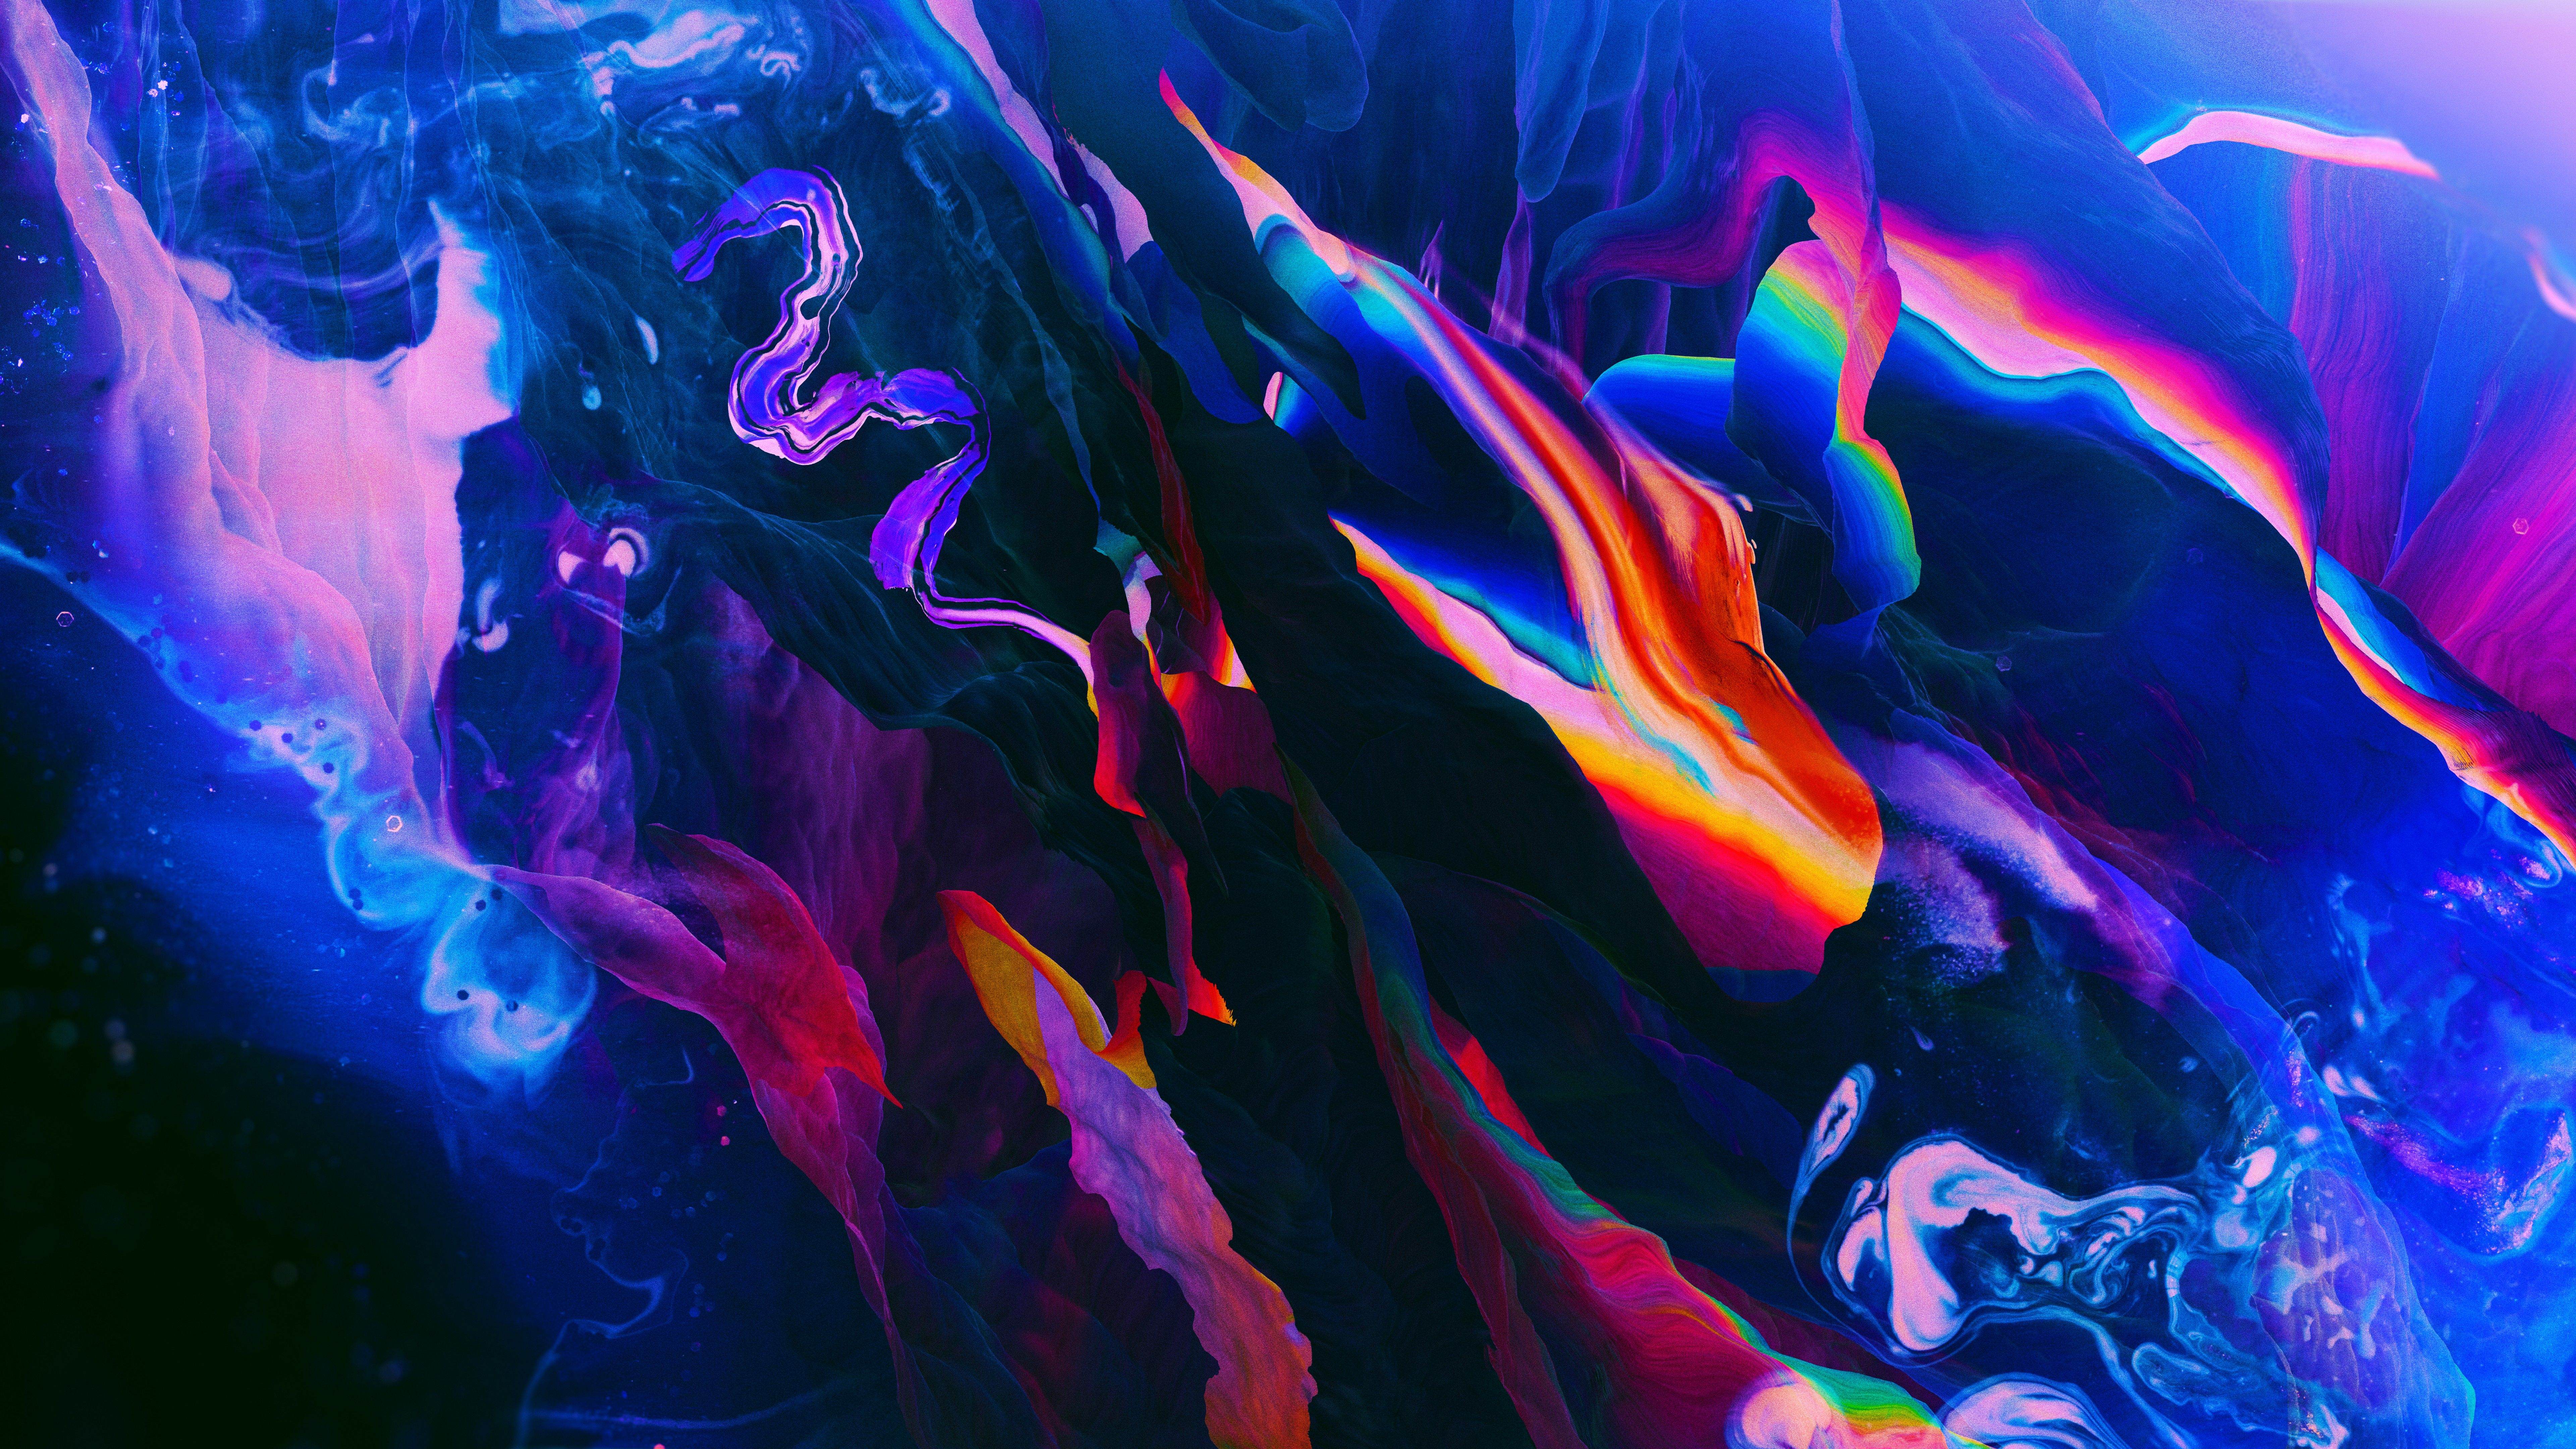 Wallpaper Collection 37 Best Free Hd Abstract Wallpaper 4k Background To Dow Abstract Art Wallpaper Computer Wallpaper Desktop Wallpapers Abstract Wallpaper